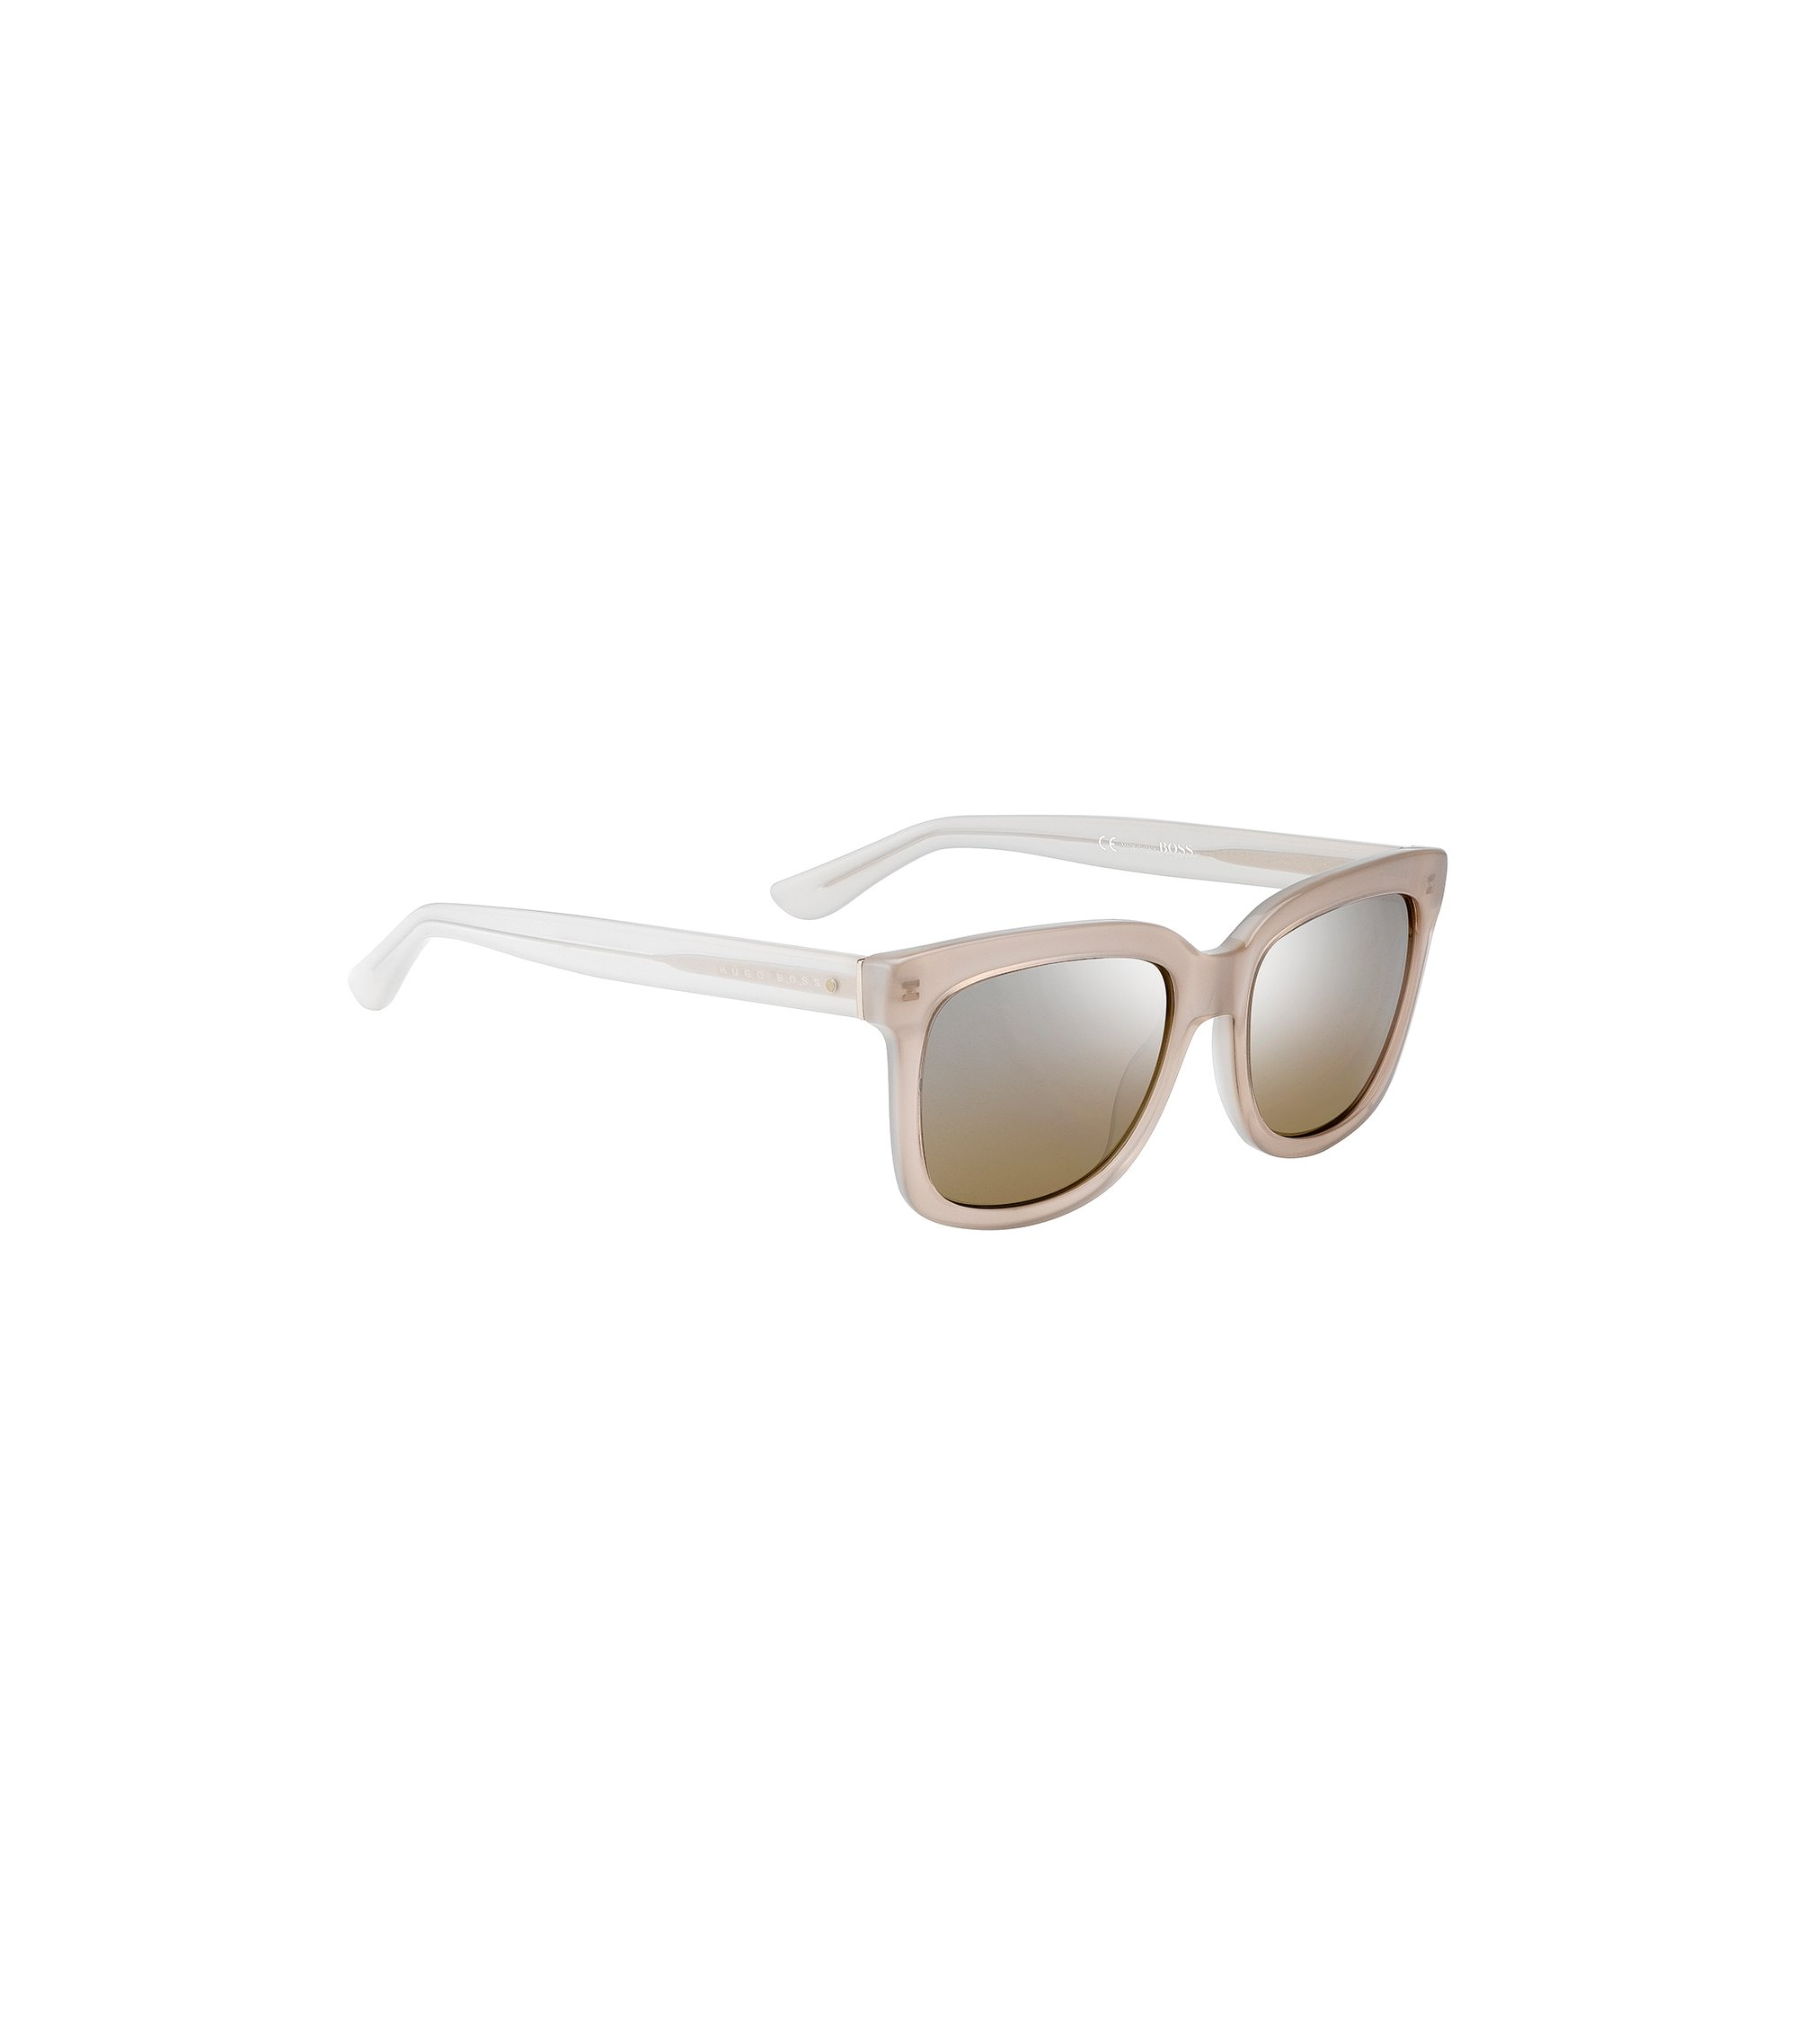 Sonnenbrille: 'BOSS 0741/S', Assorted-Pre-Pack